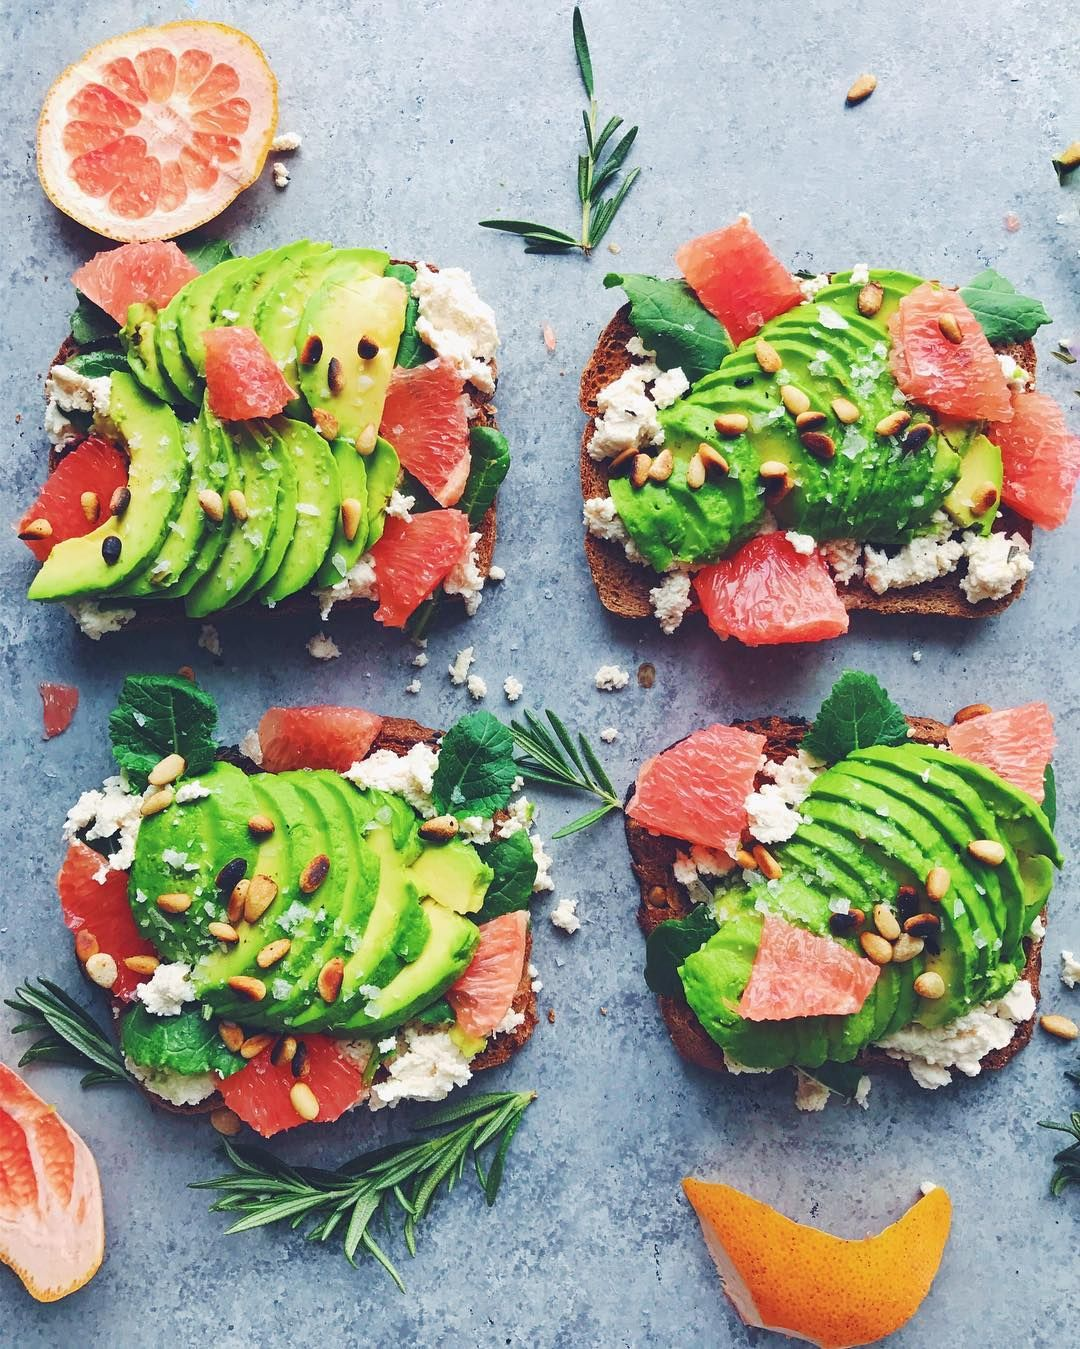 Avocado and DOLE® Grapefruit go hand-in-hand with this delicious appetizer from @leefromamerica. We'll 'toast' to that!